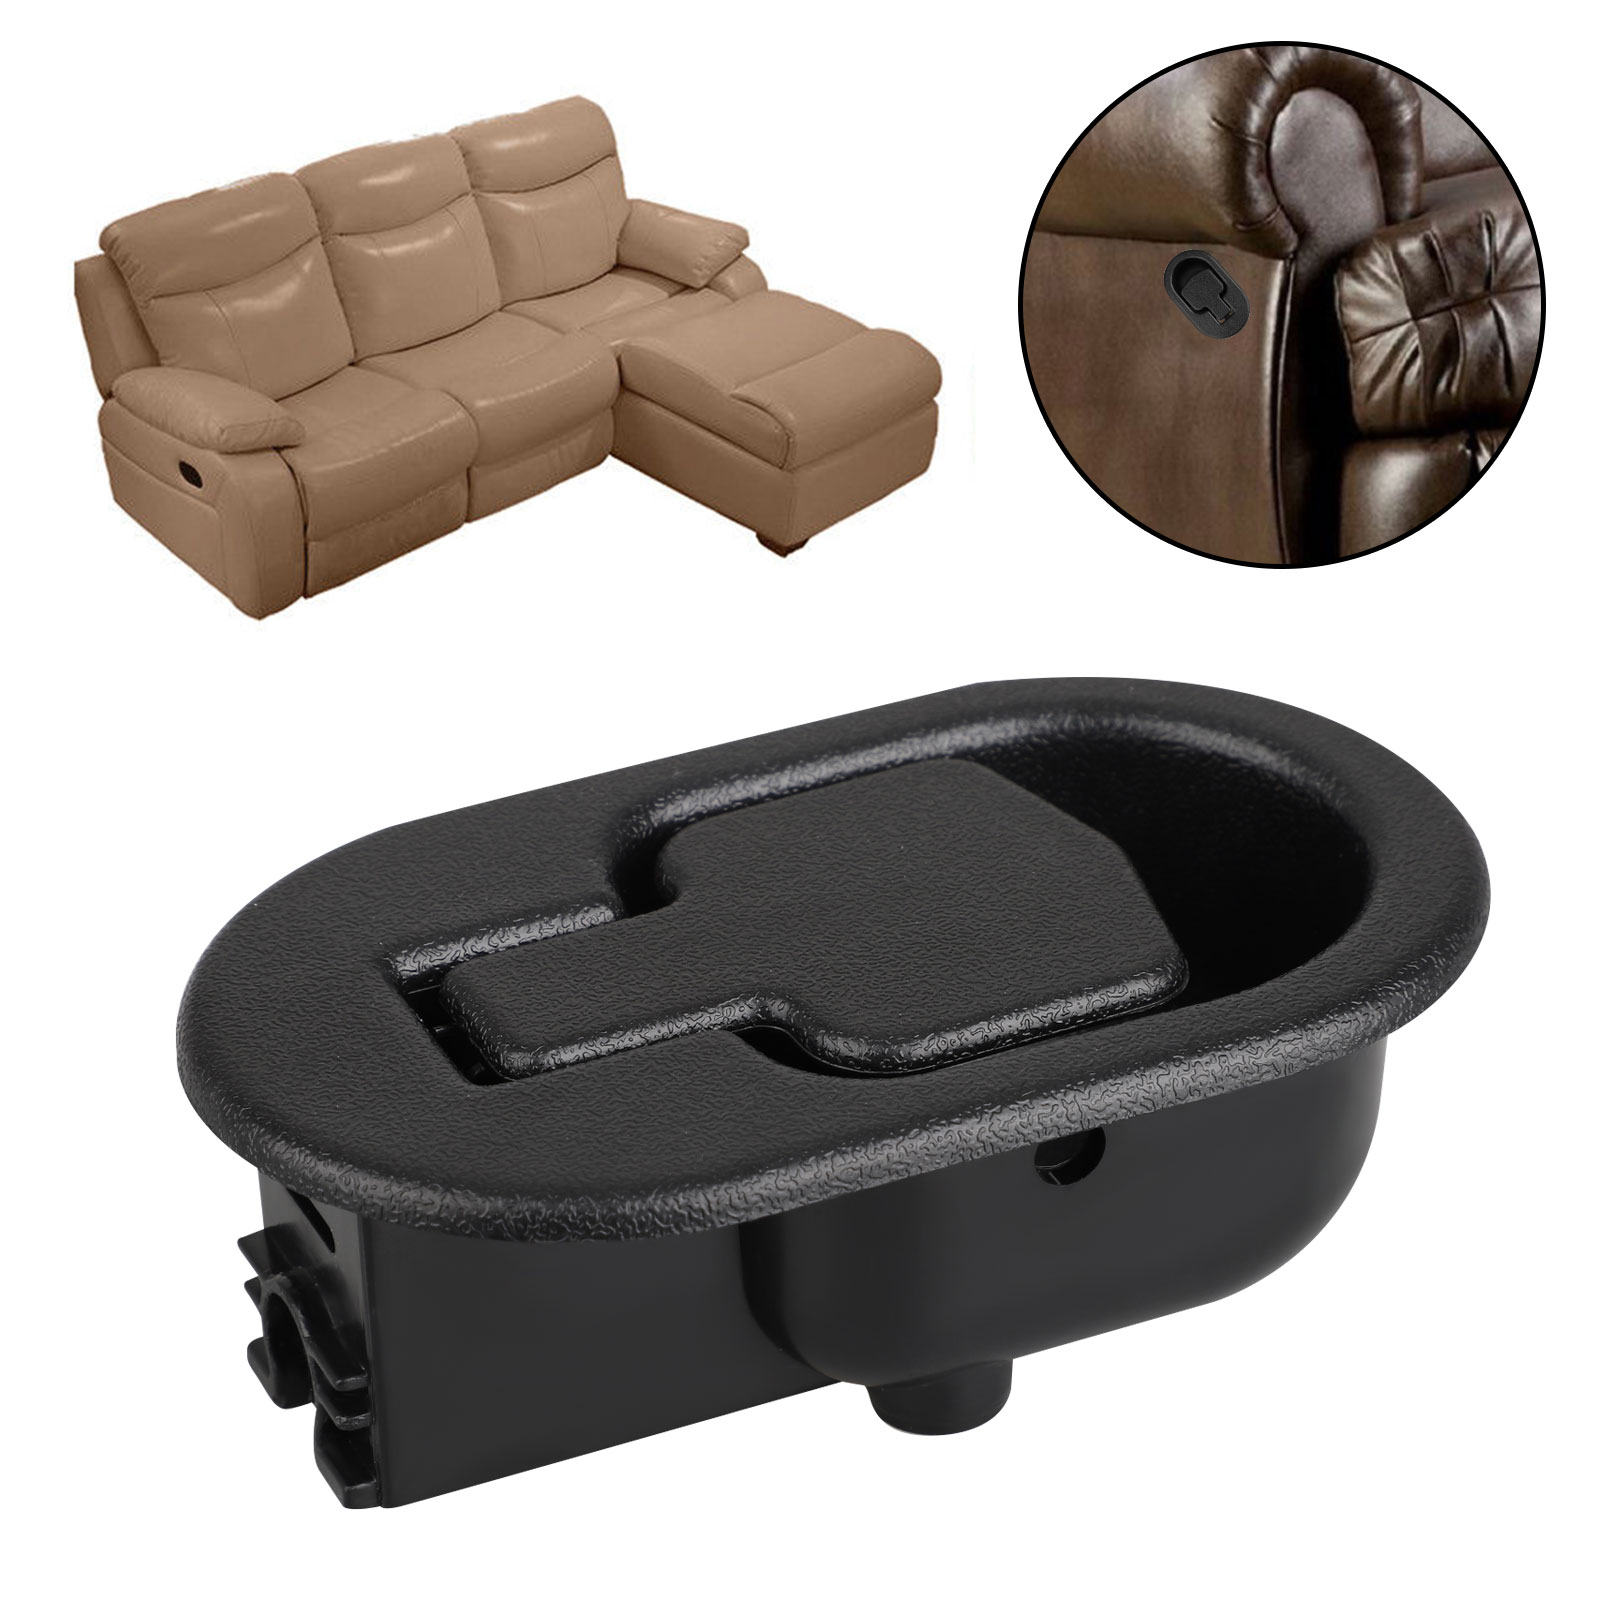 Reliable Recliner Replacement Parts For Standard 5mm